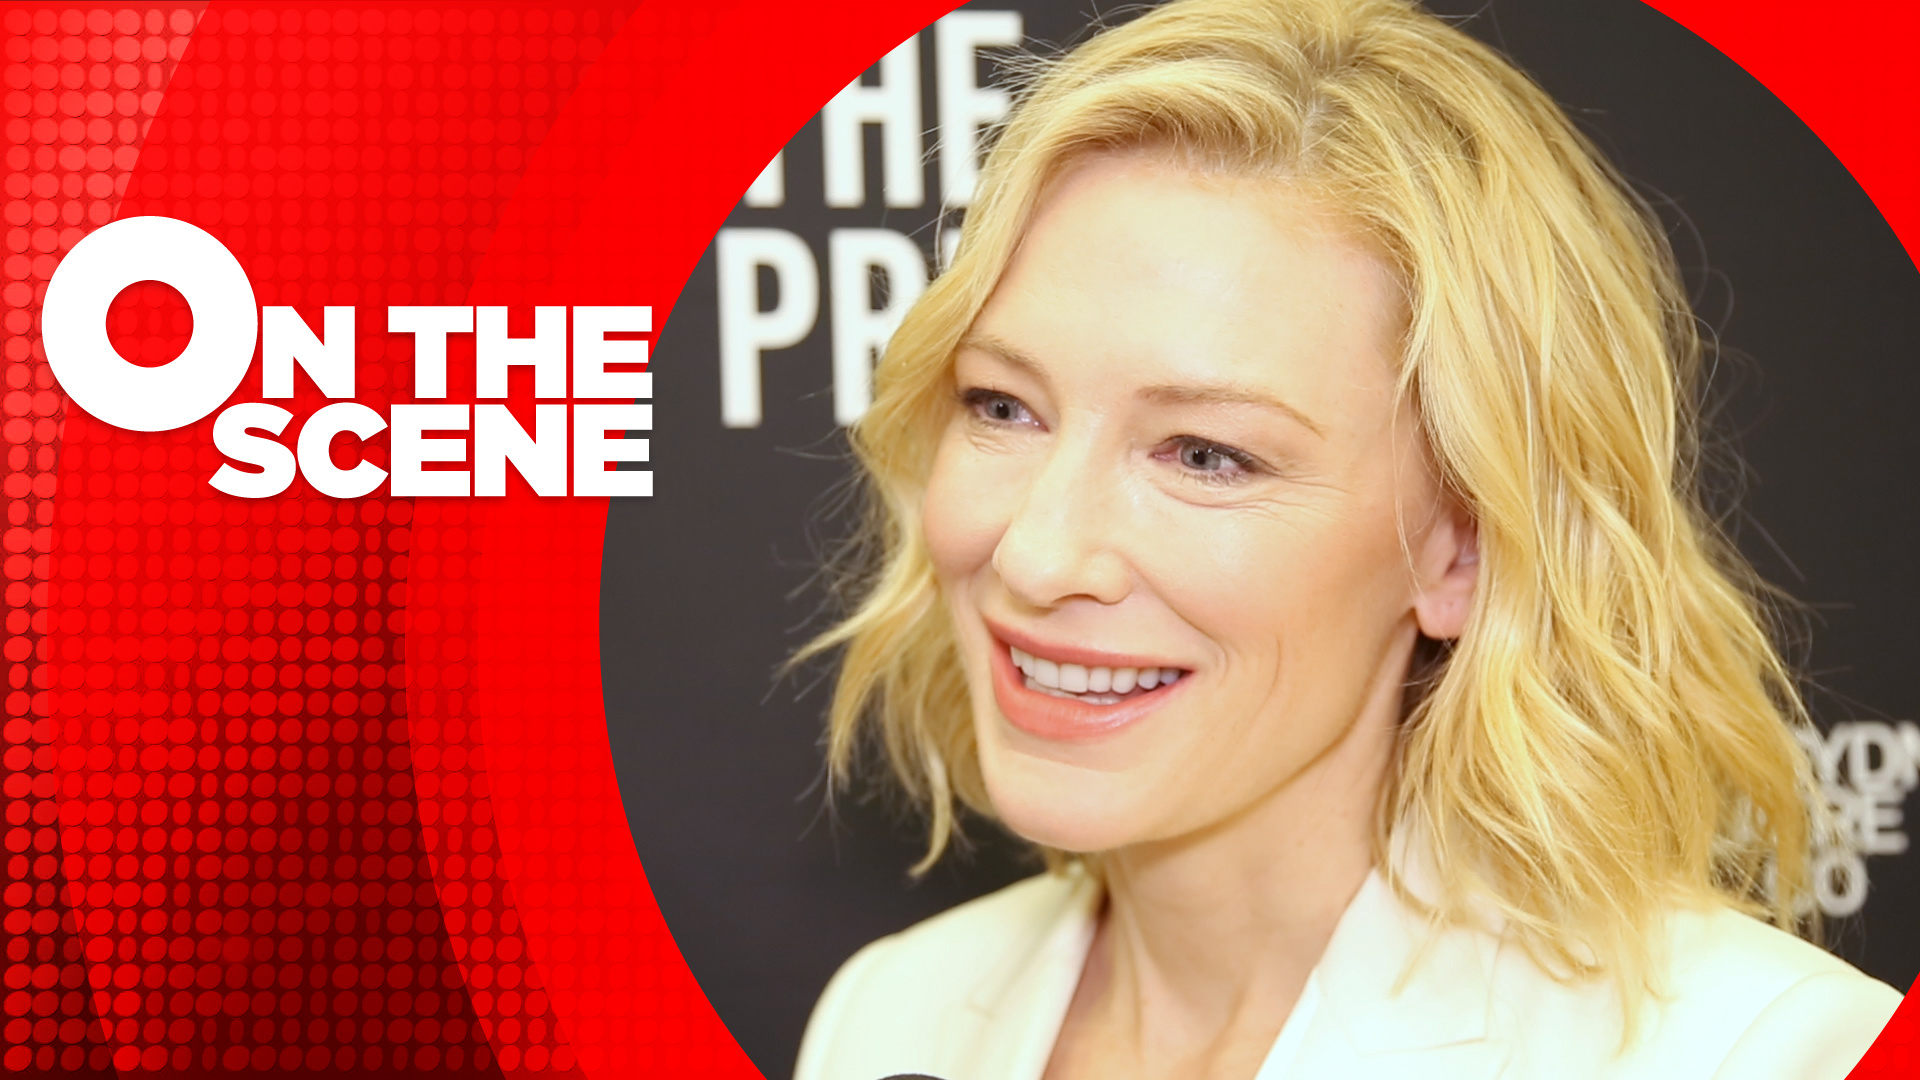 [Video] The Present's Cate Blanchett on Making Her Broadway Debut in Chekhov's Tale of Thwarted Desire.